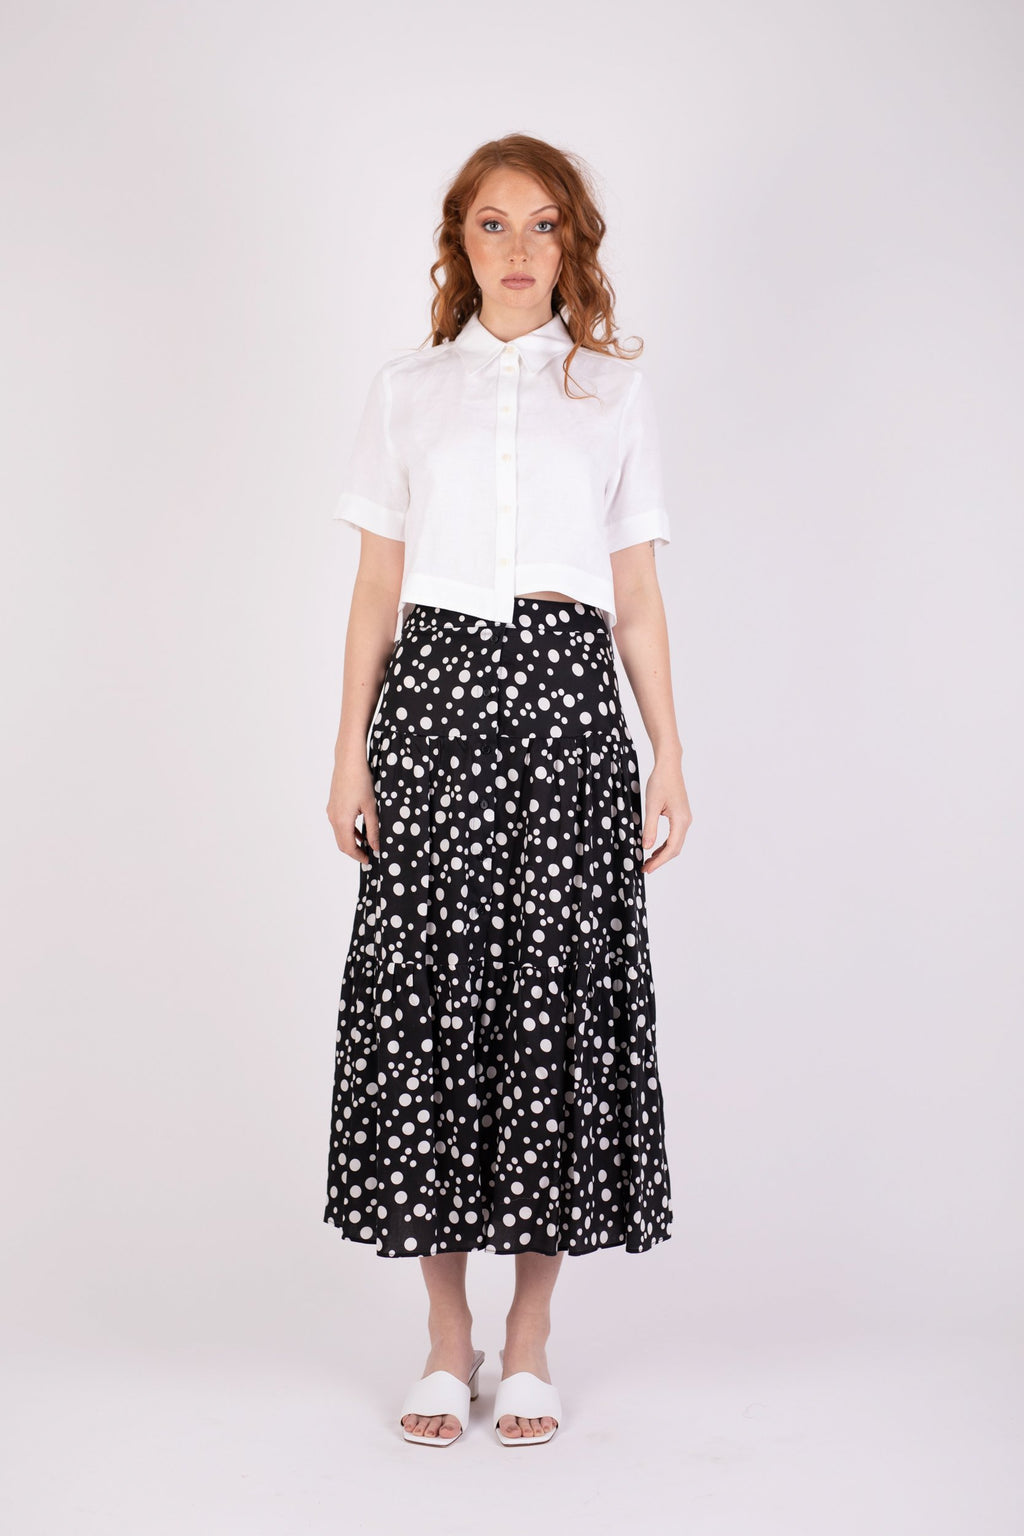 Valencia Skirt Black Random Dot Skirts The Fashion Advocate ethical Australian fashion designer boutique Melbourne sustainable clothes